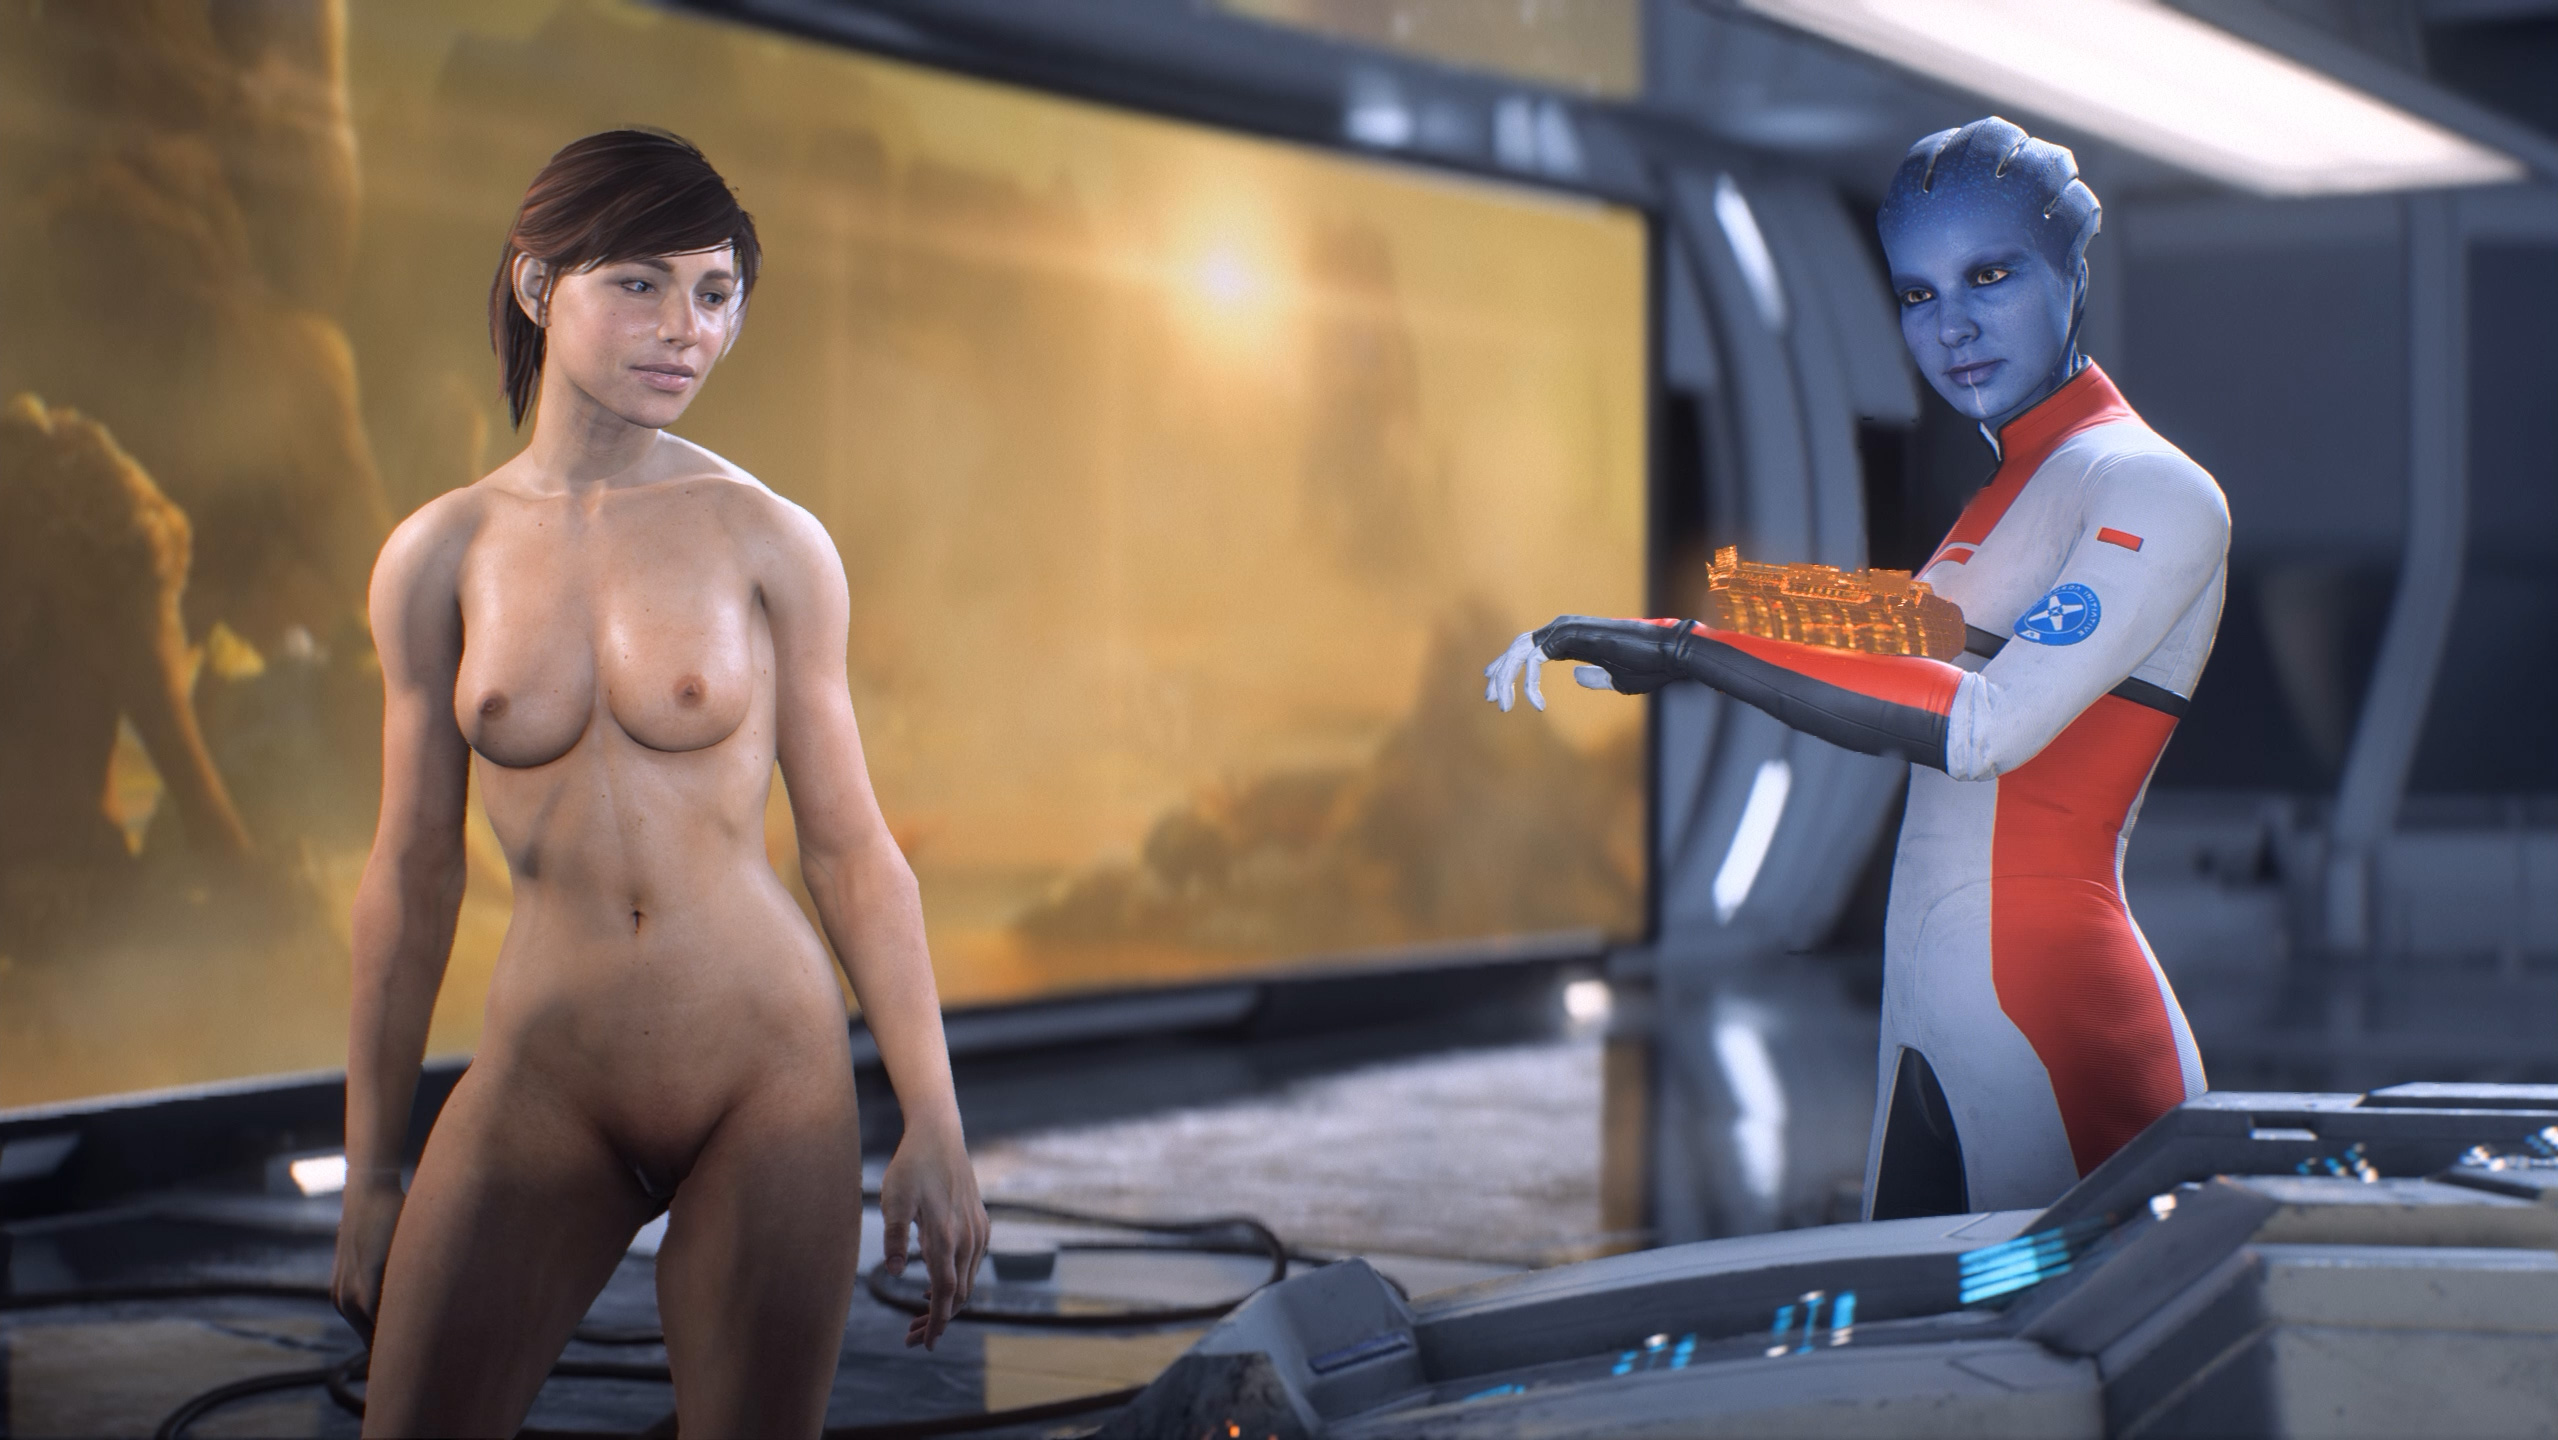 Mass effect nude modes sexy curvy girls